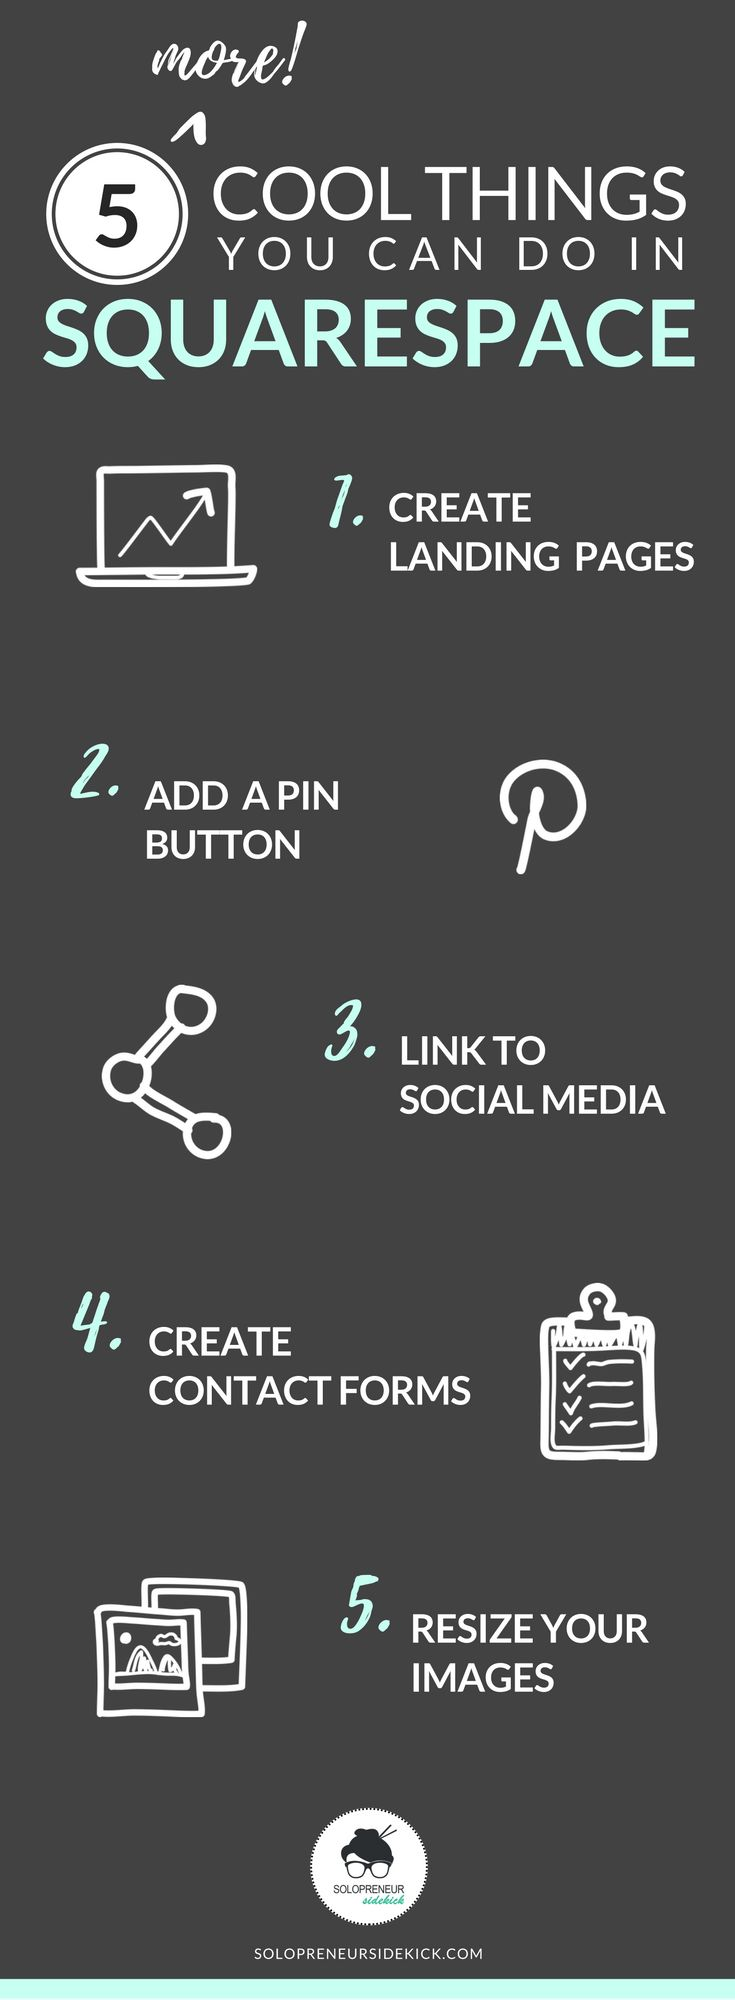 5 More Cool Things You Can Do in Squarespace. Quickly + easily DIY your website and create landing pages, add a pin button, link to social media, create contact forms and resize your images. Help for building your own website. solopreneursidekick.com/blog/5-more-cool-things-you-can-do-in-squarespace